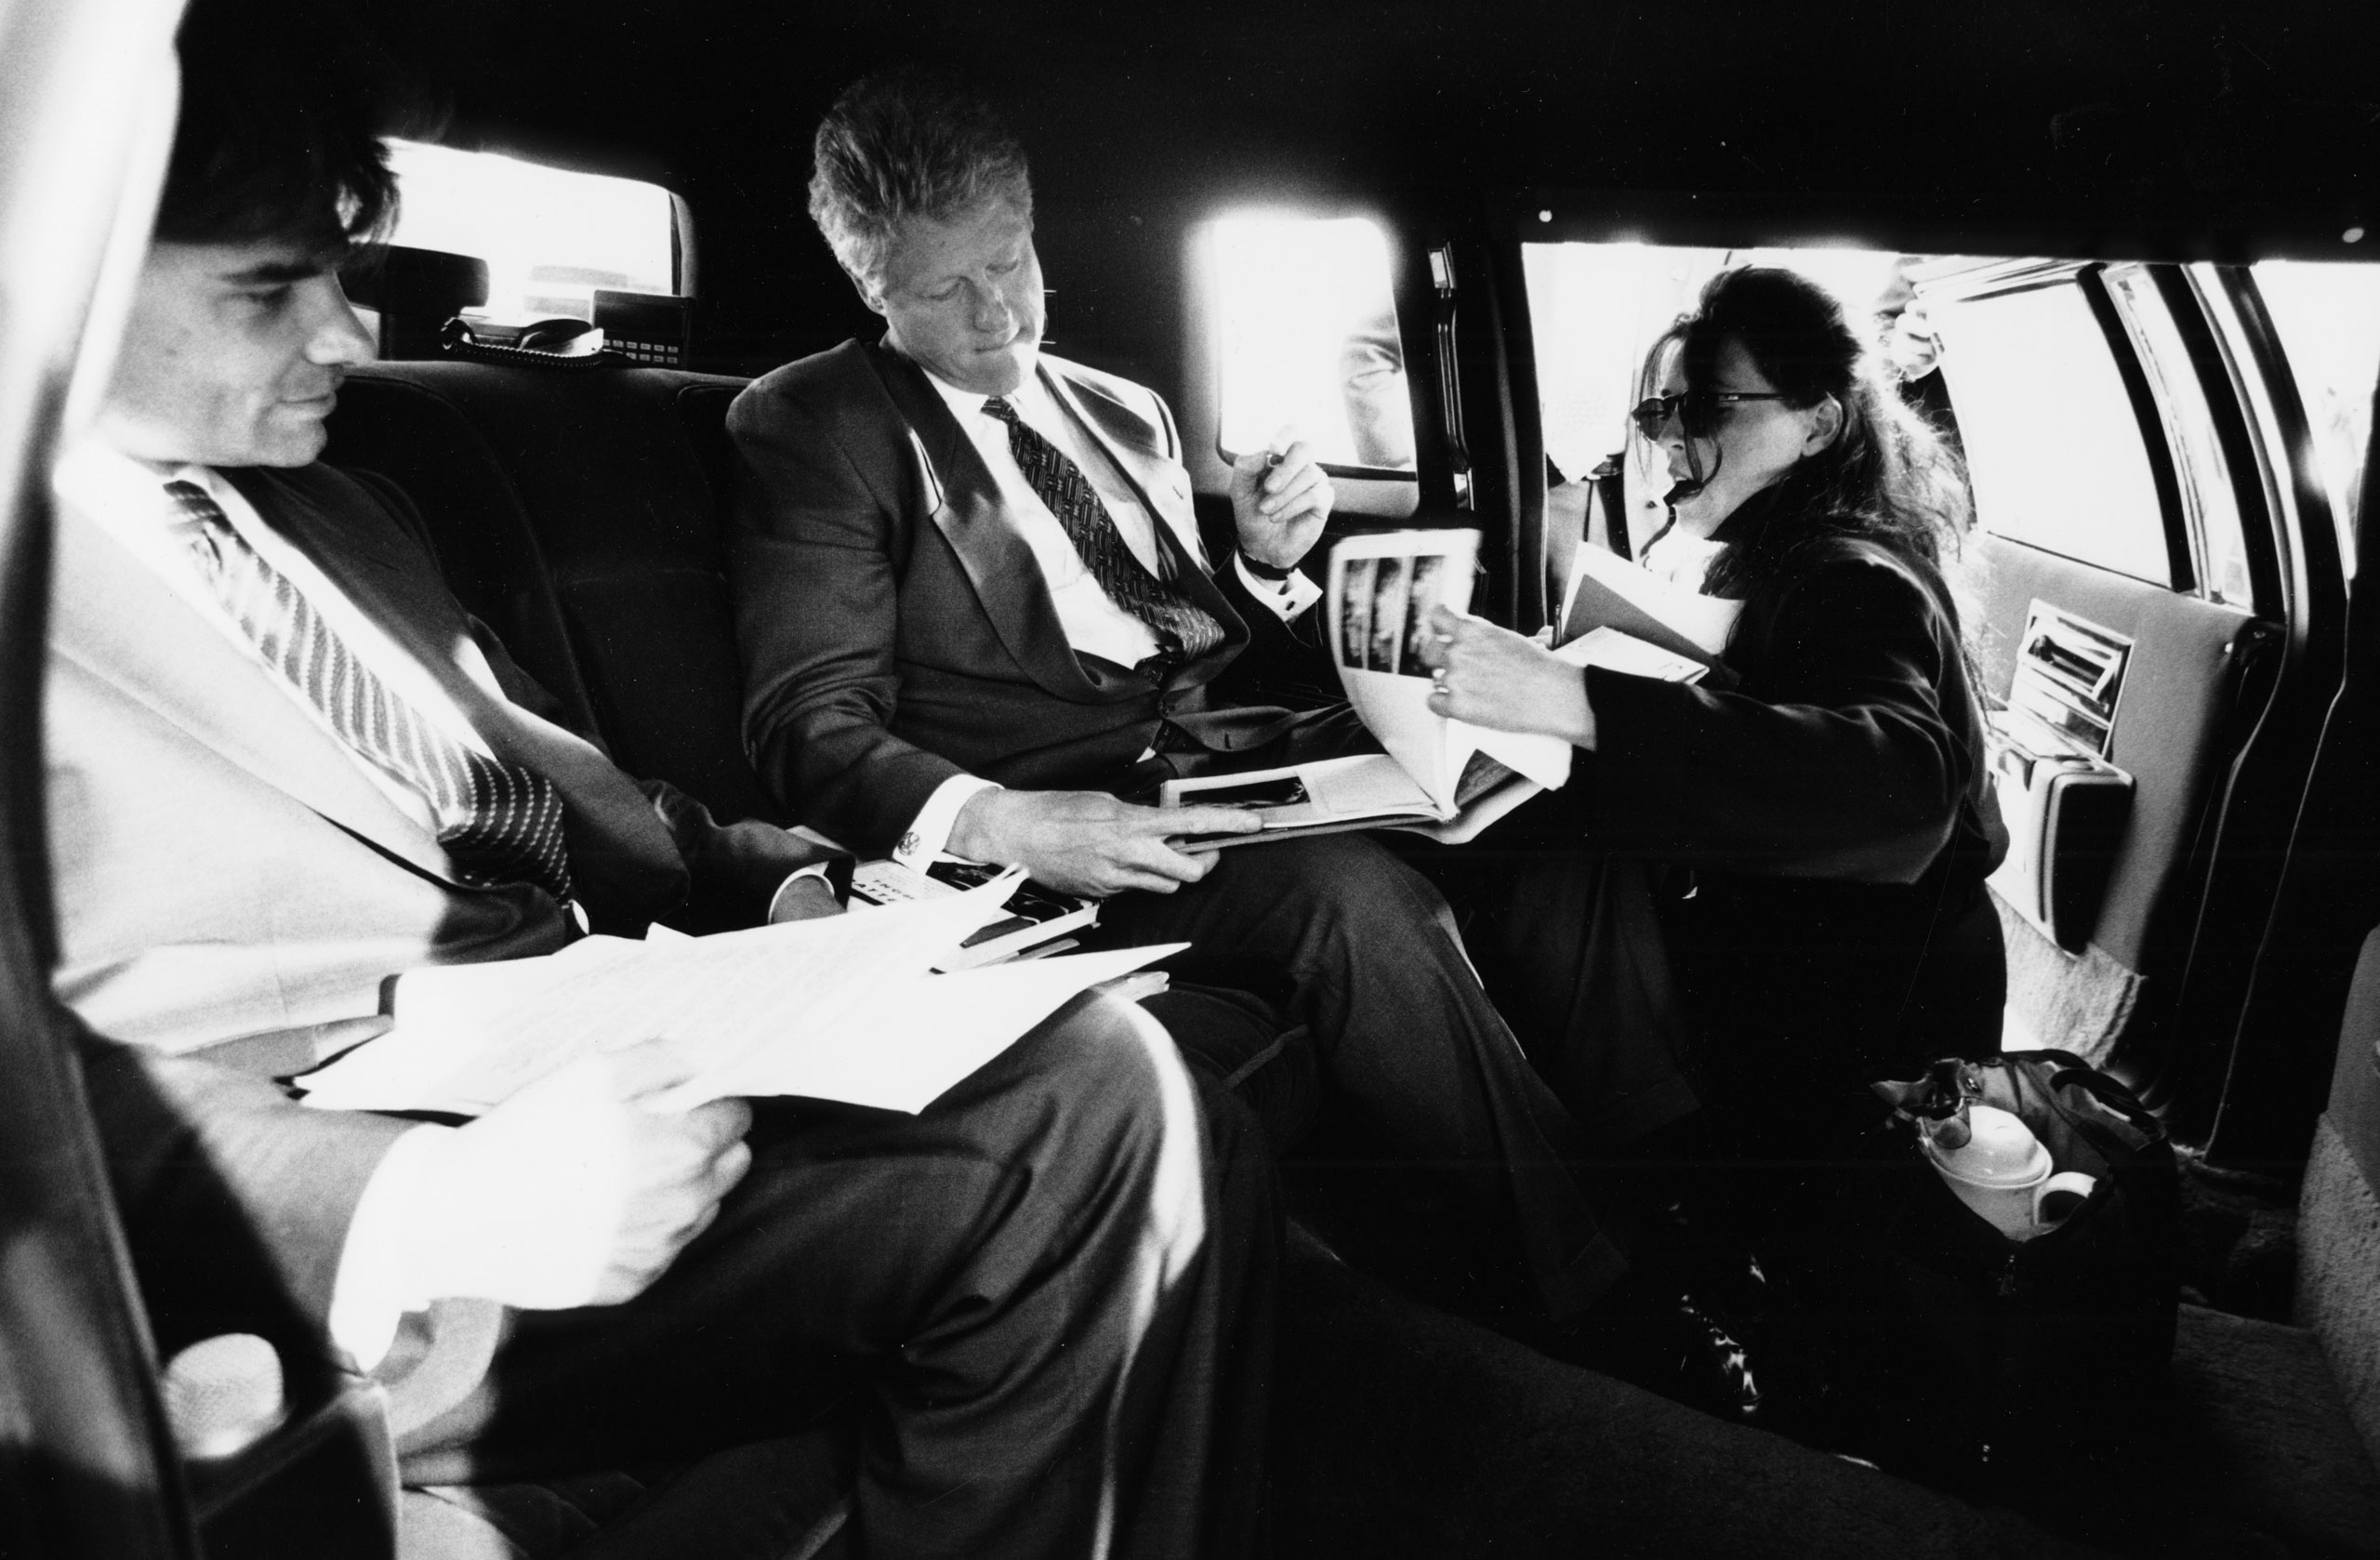 President Clinton in a limousine with George Stephanopoulos and Wendy Smith, signing autographs during a Presidential trip